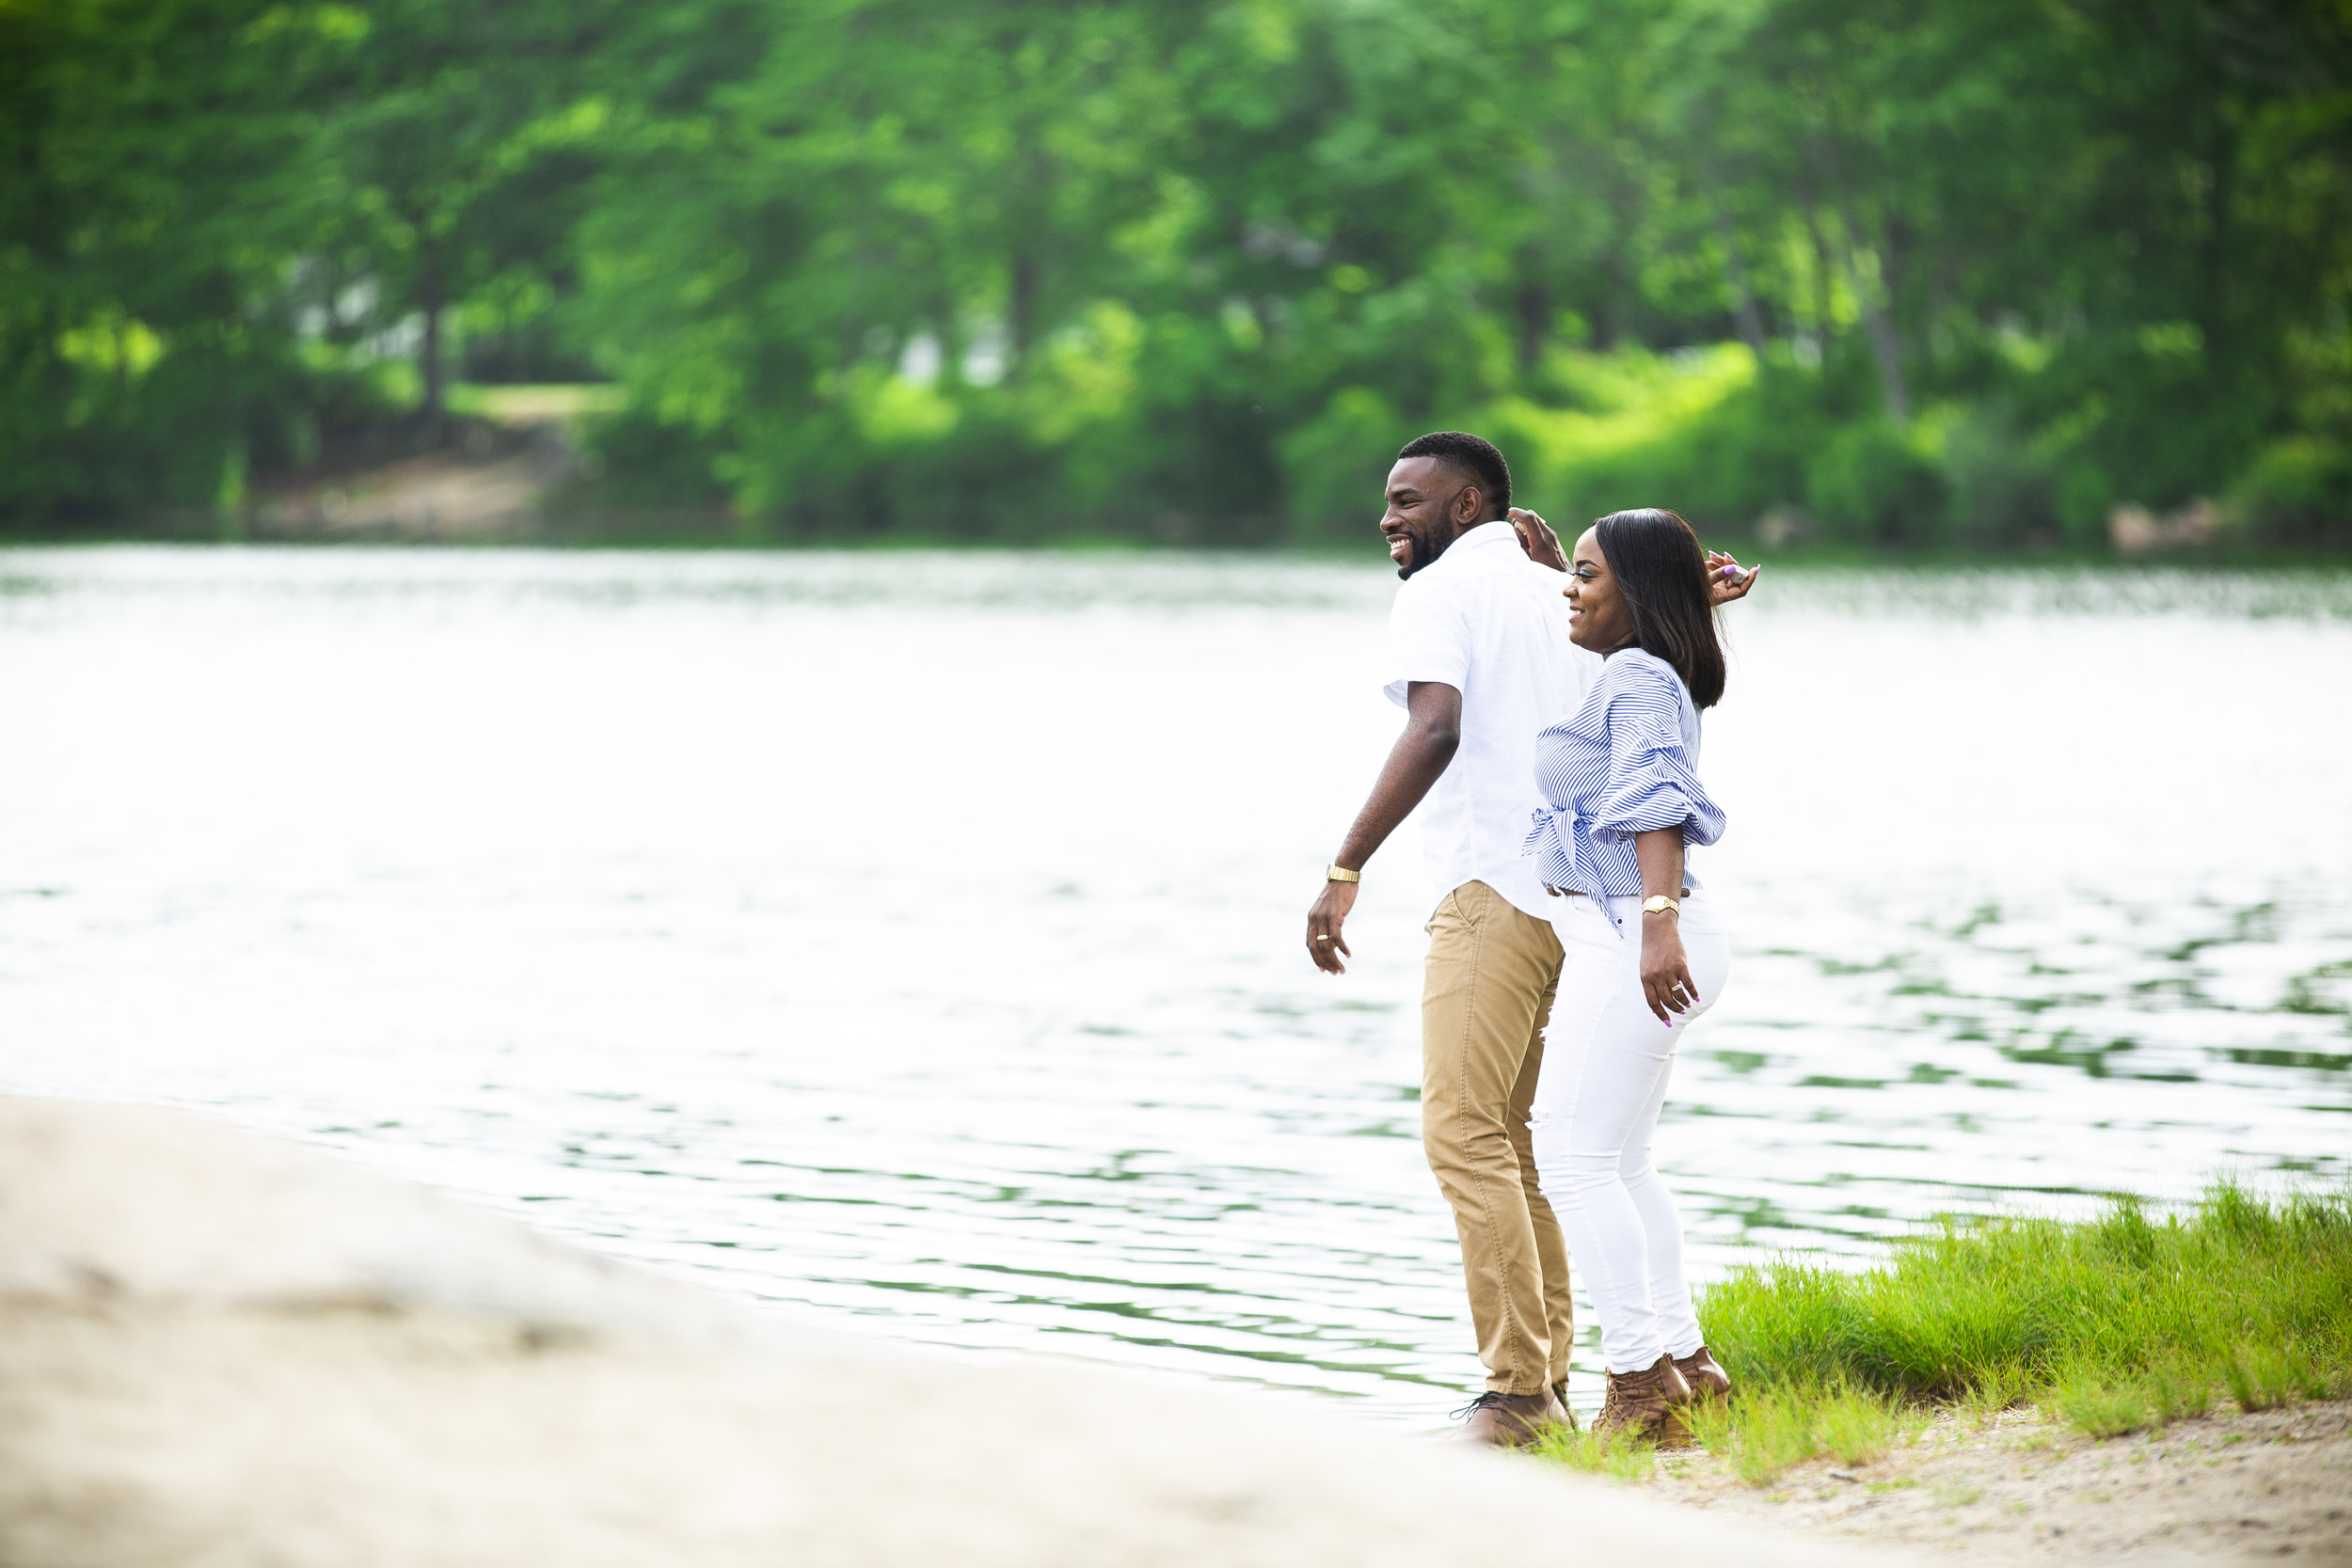 314A6290+Giovanni The Photographer+Best Boston Engagement Photography+Couples Session+Houghton's Pond Milton.jpg